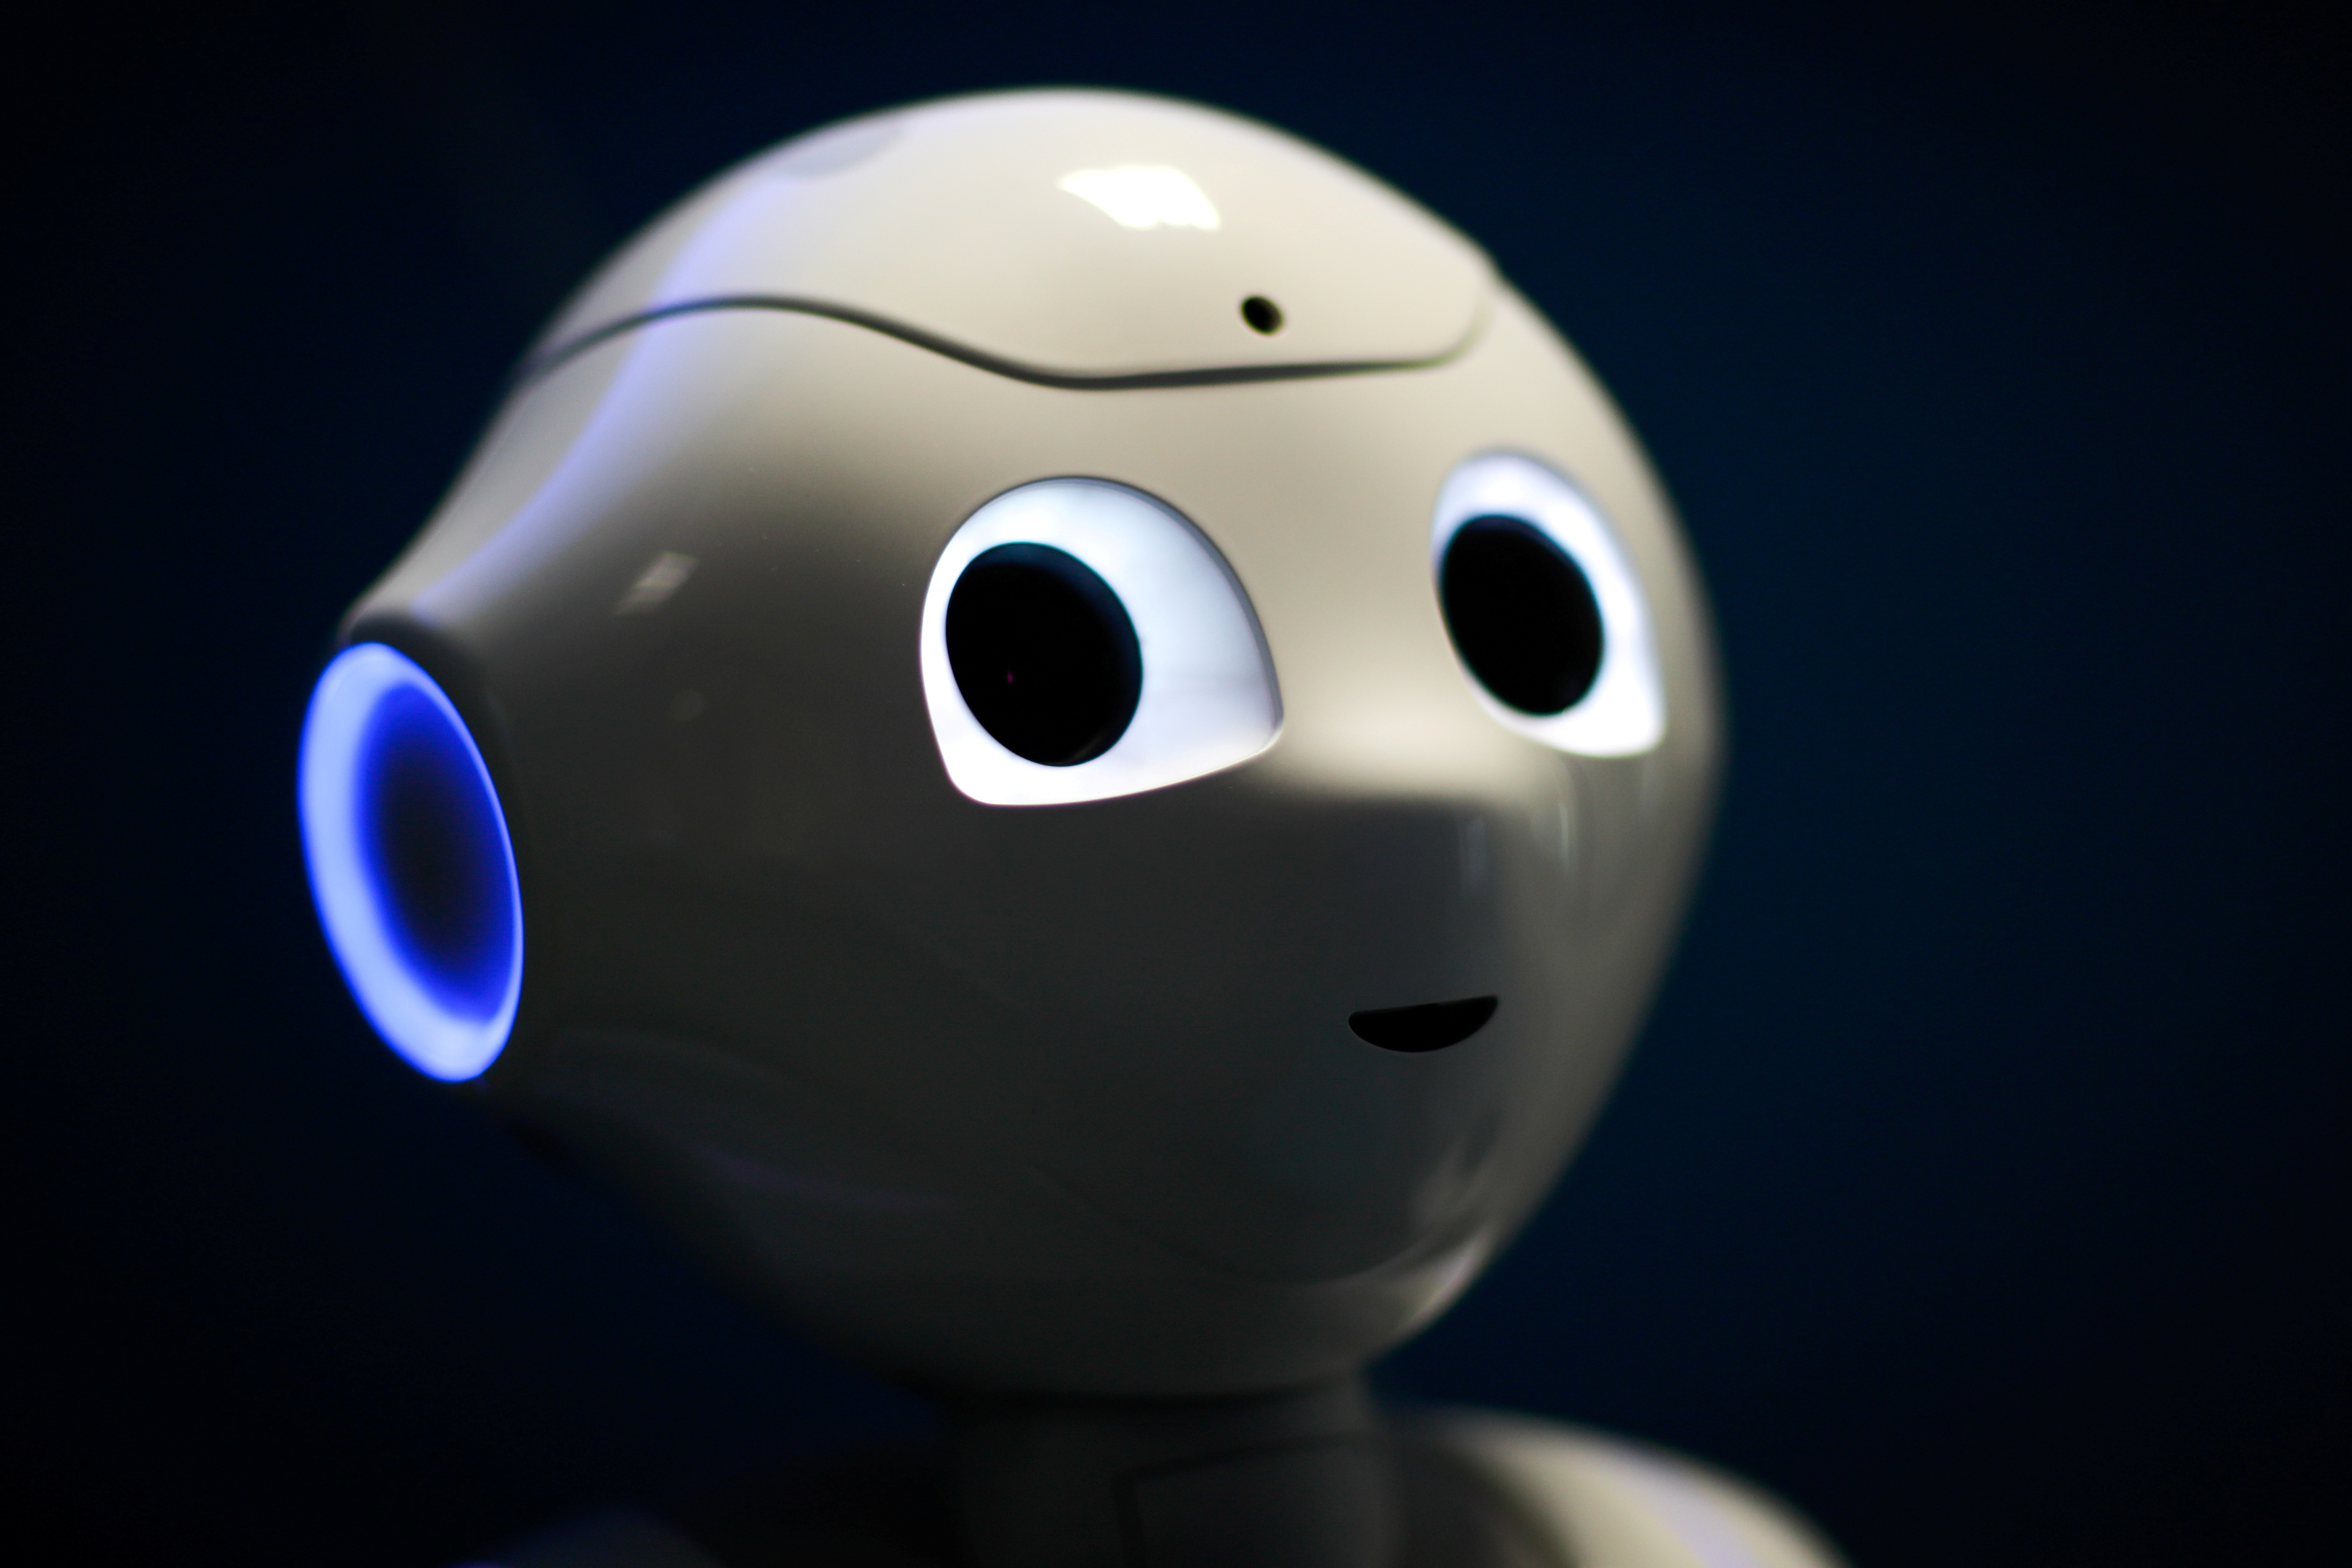 French robot Pepper, detecting whether people are wearing face masks and if not, instructs them to wear them, is displayed at French robotics developer SoftBank Robotics in Paris as the coronavirus disease (COVID-19) continues to spread out across France, September 8, 2020. REUTERS/Gonzalo Fuentes/File Photo